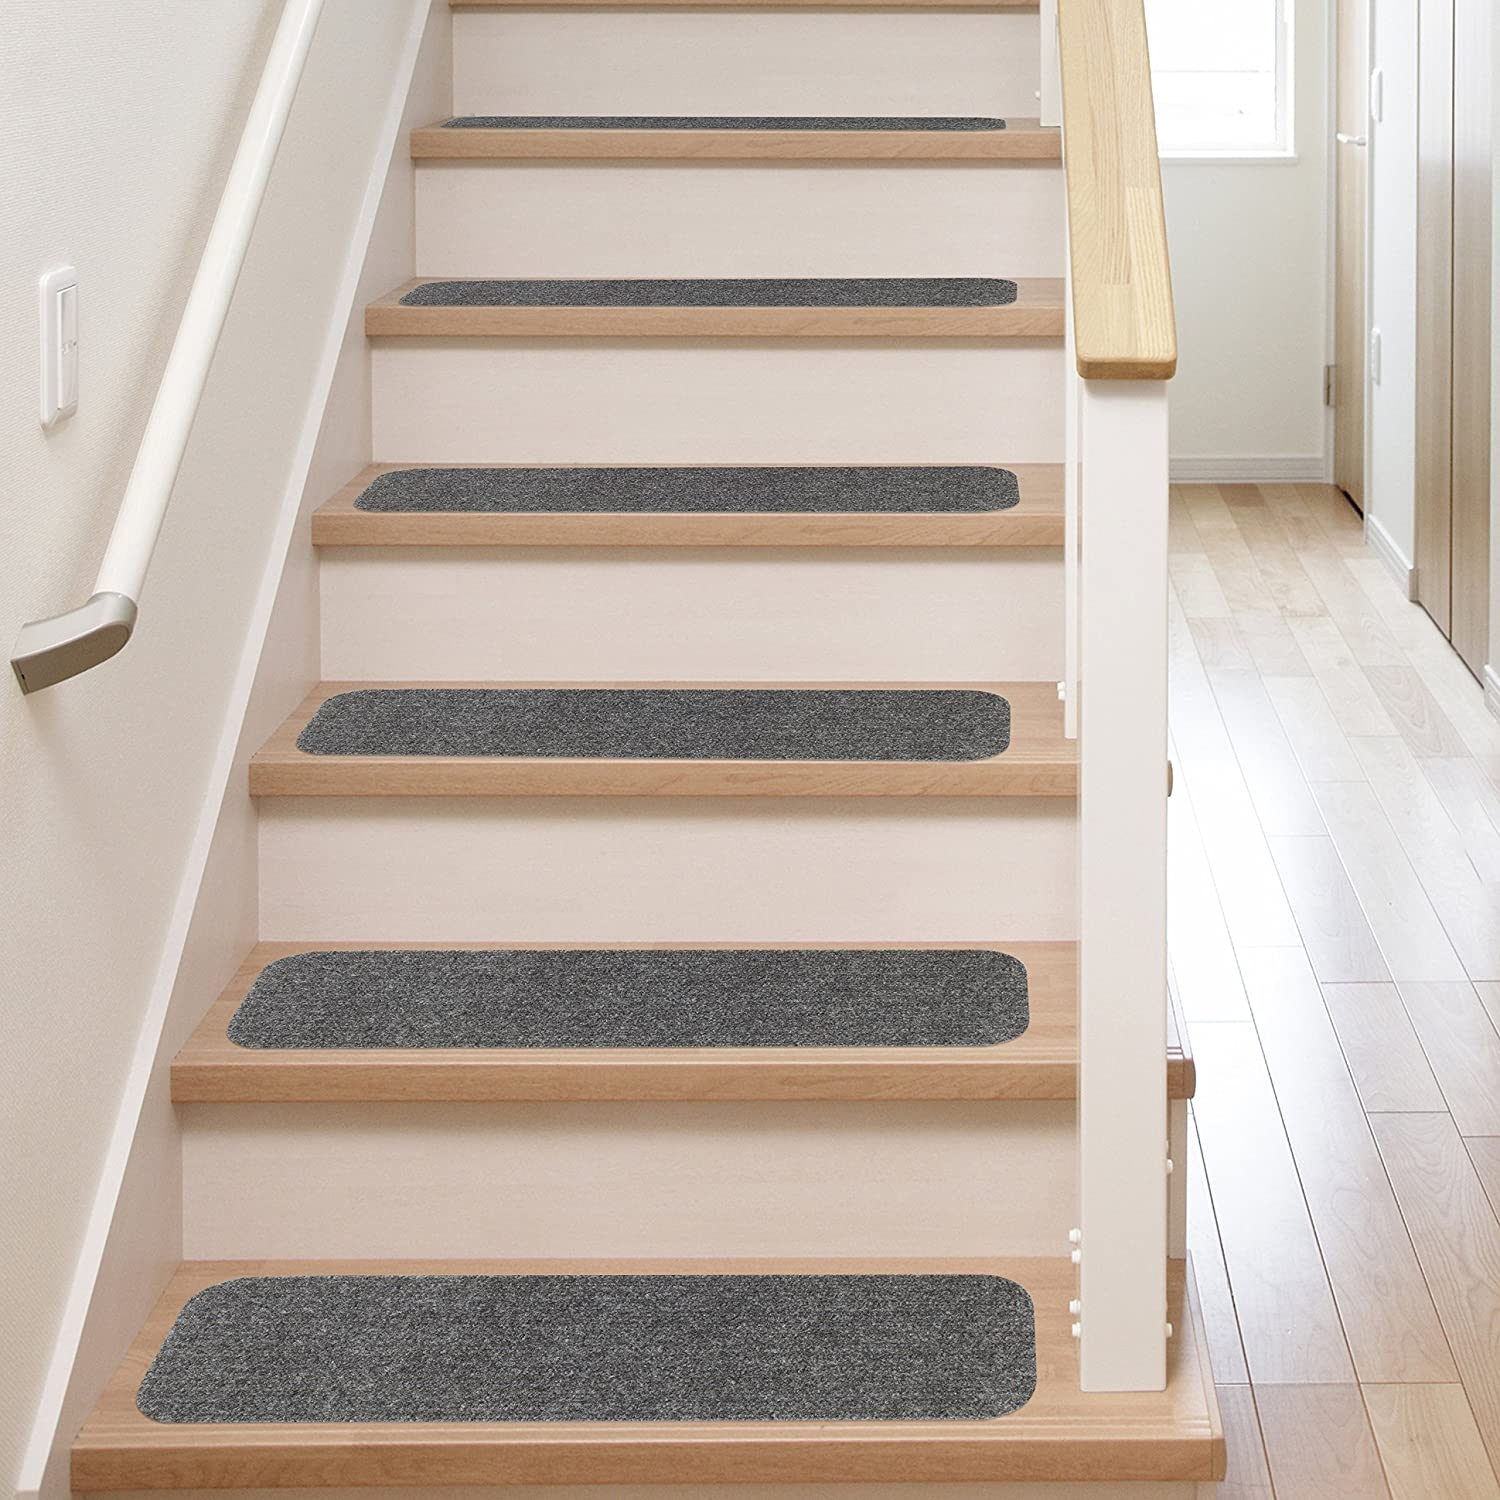 13 Stair Treads Non Slip Carpet Pads Easy Tape Installation   Converting Carpeted Stairs To Hardwood   Stair Case   Treads   Staircase Makeover   Stain   Wood Flooring